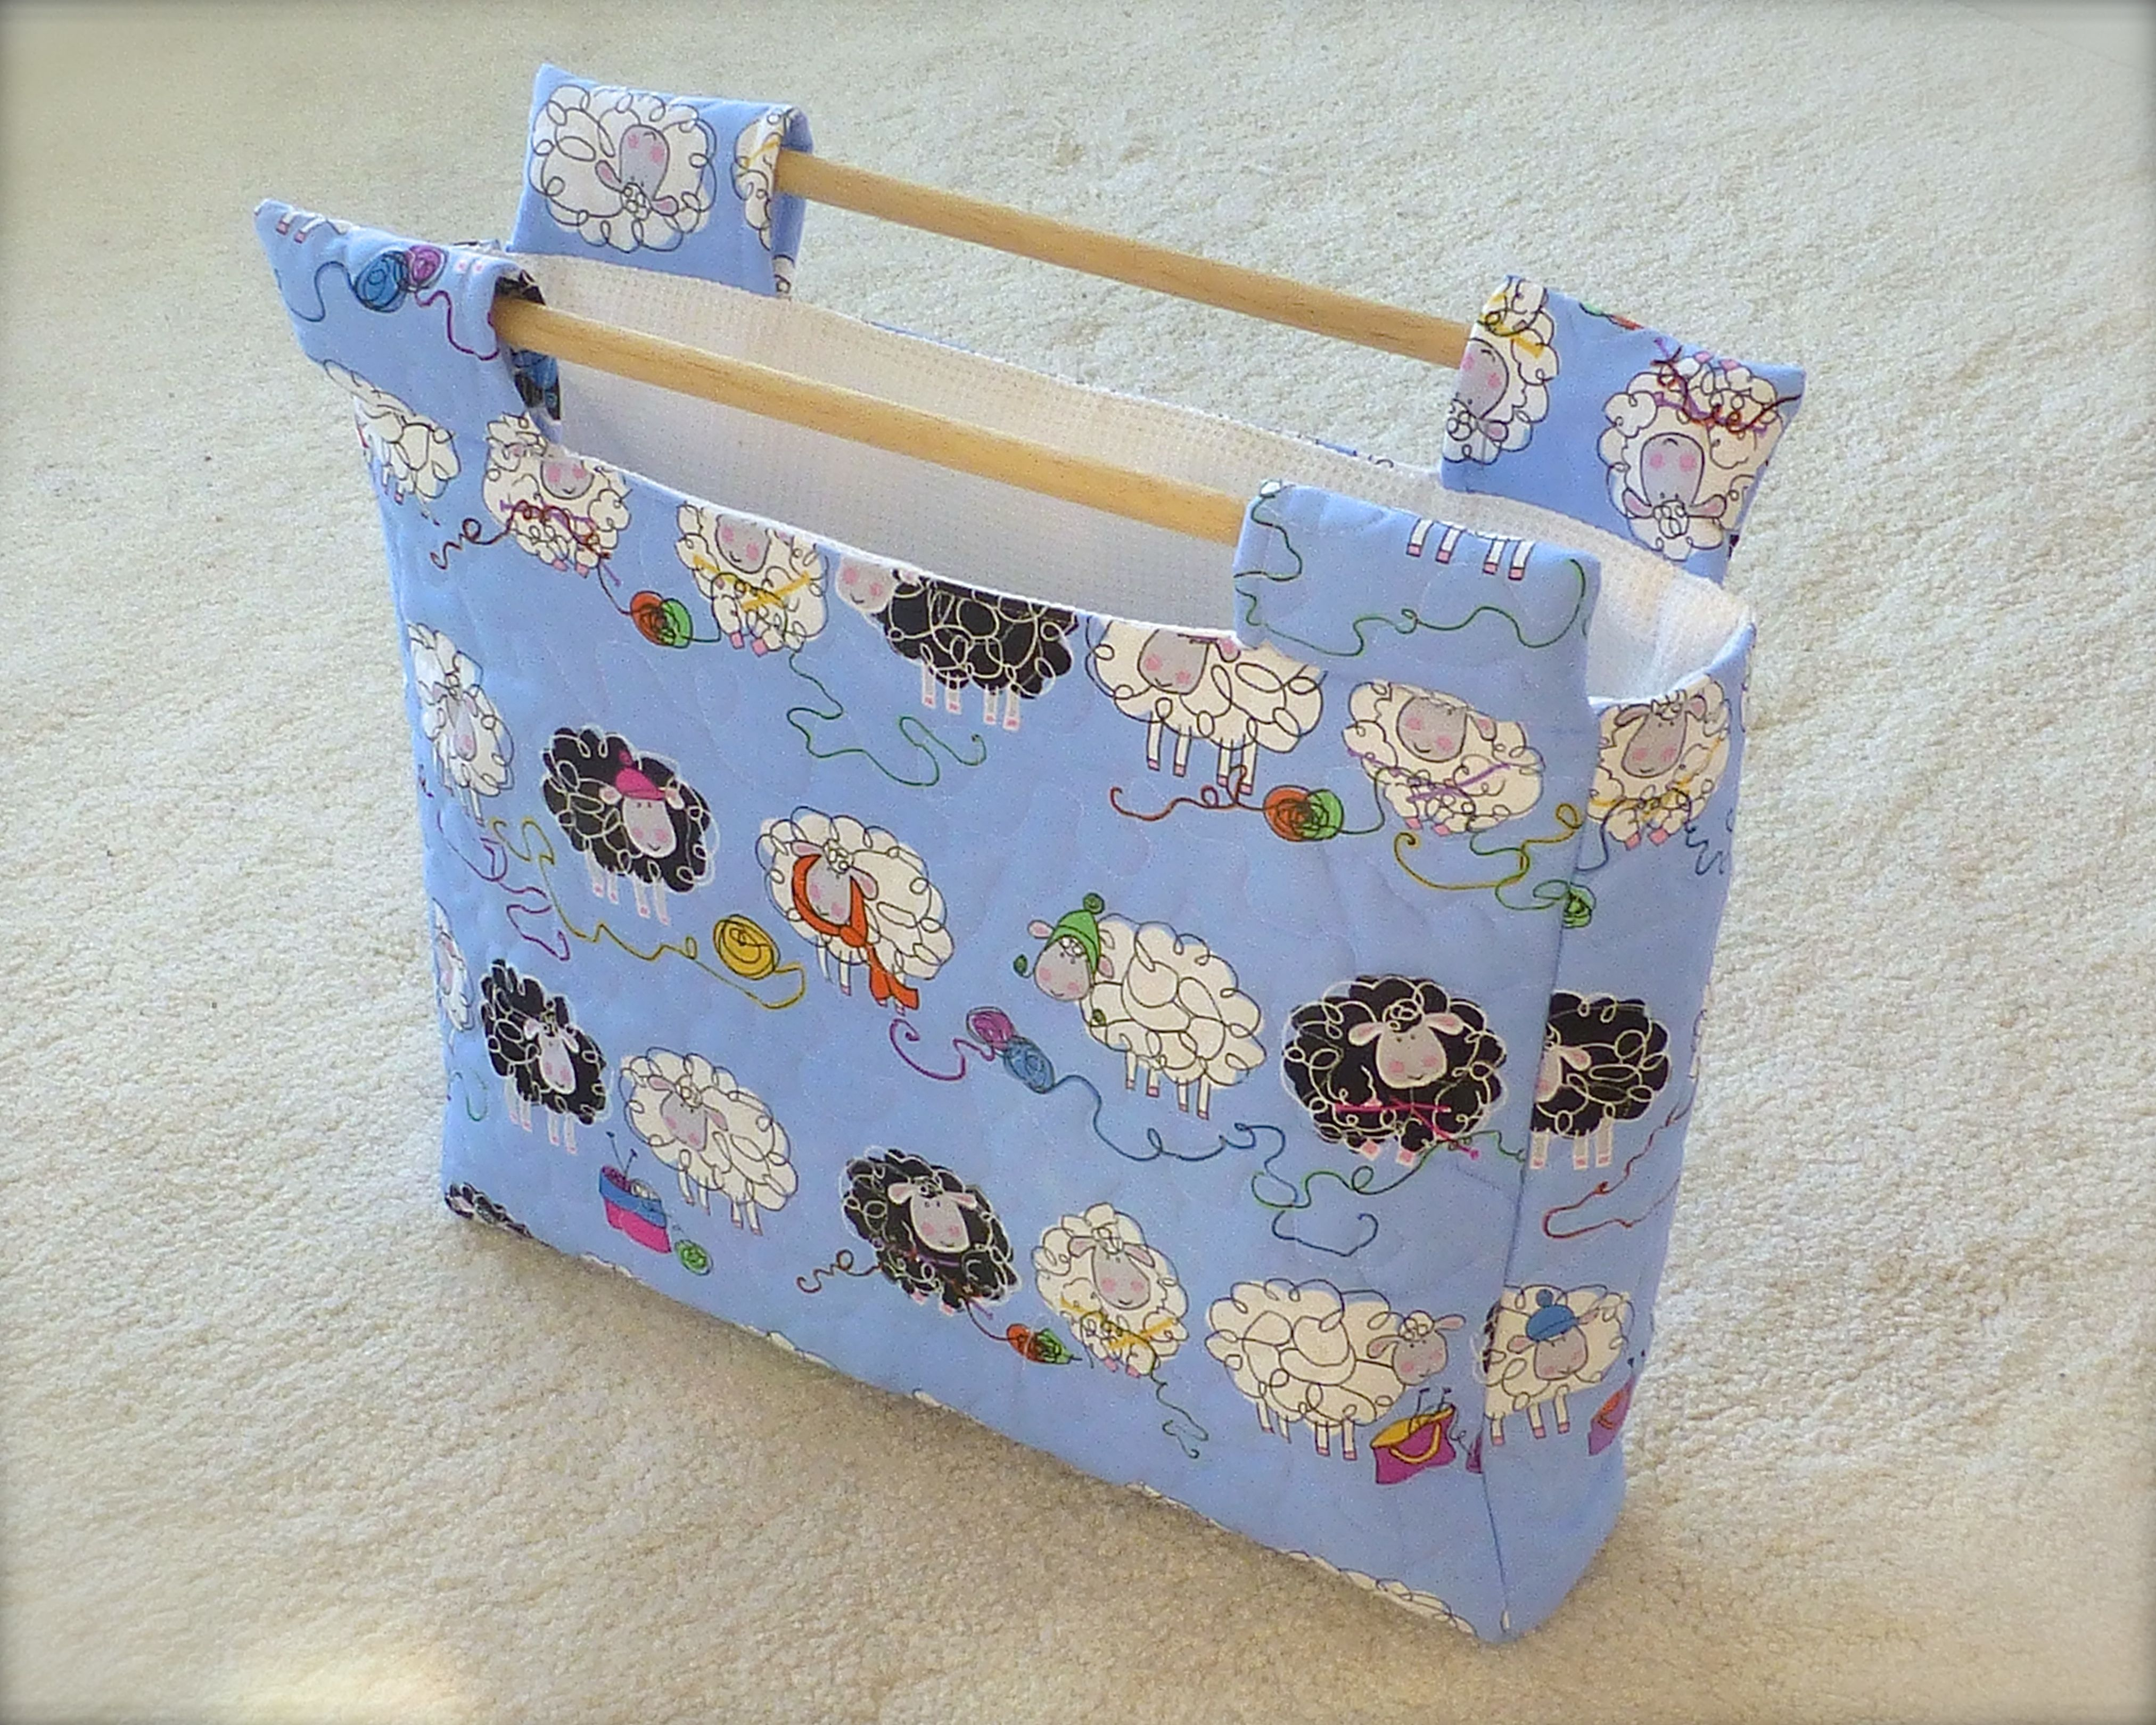 Quilted Knitting Bag Pattern : Another bag perfect for knitting or crochet sewchet